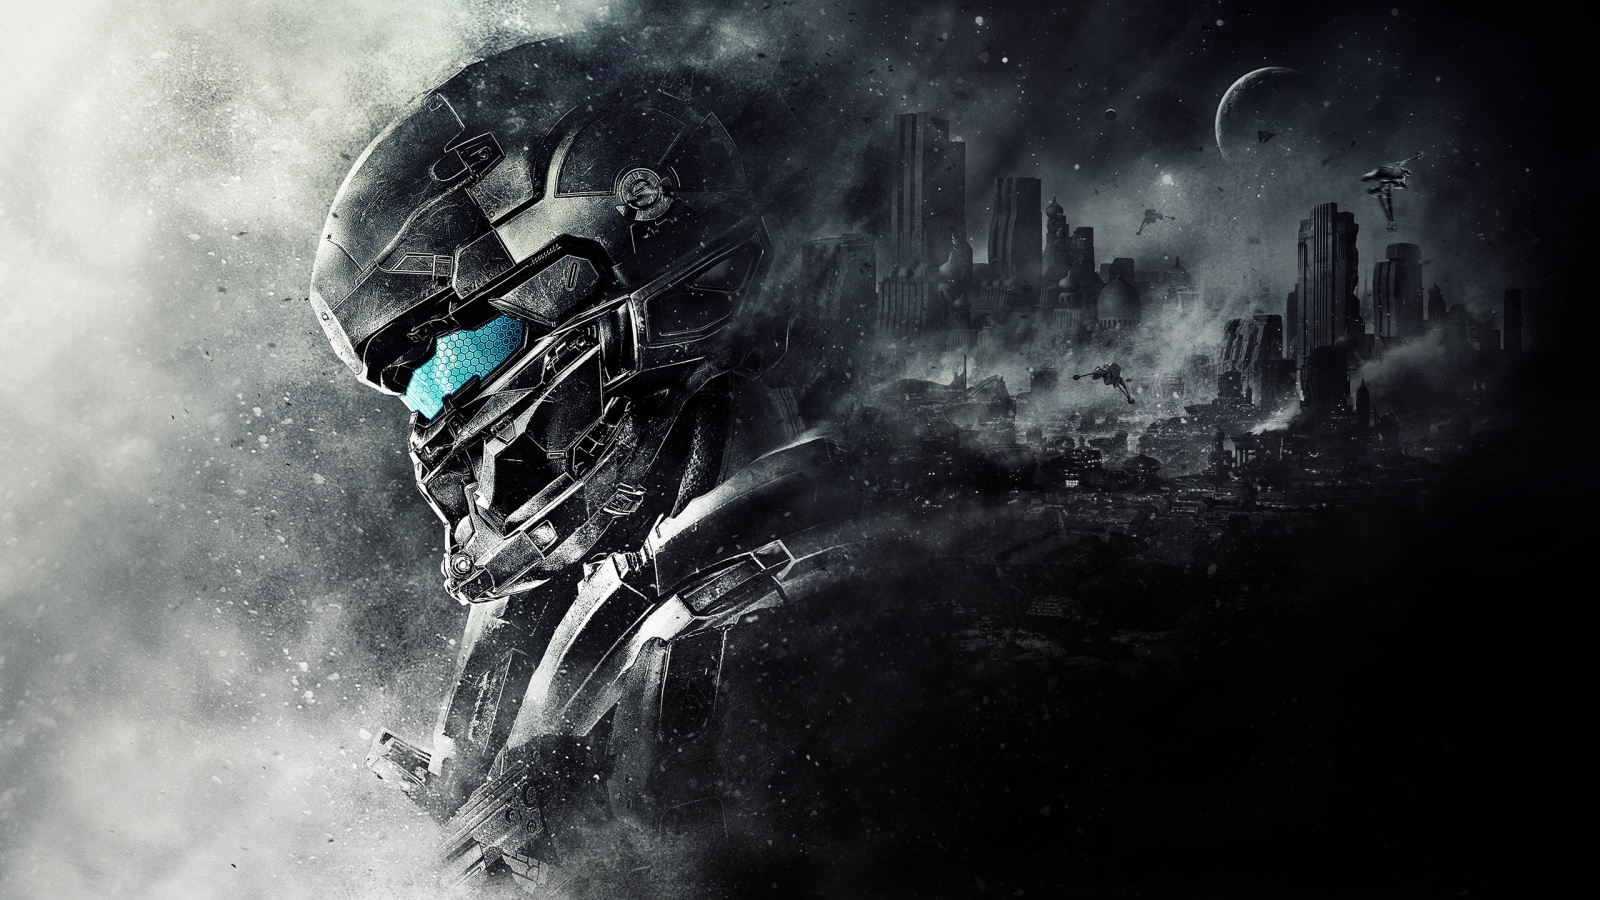 Spartan Locke Halo 5 Guardians Wallpapers HD Wallpapers 1600x900